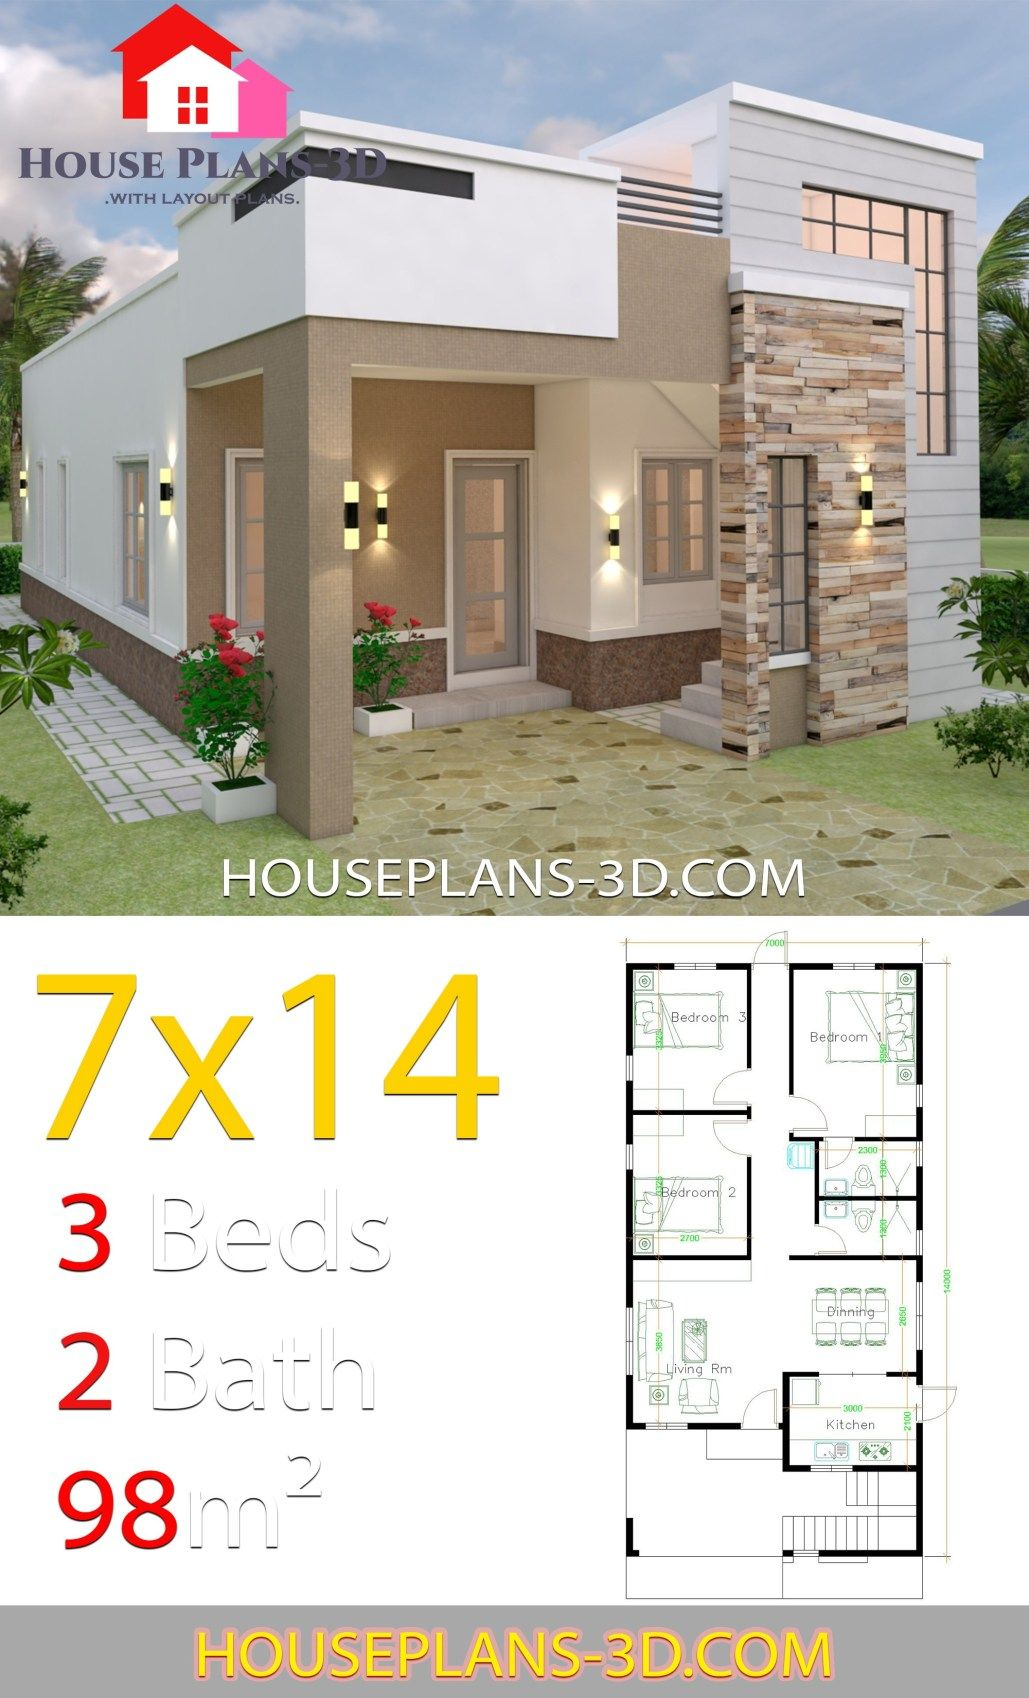 House Design Plans 7x14 With 3 Bedrooms Samphoas Plan House Construction Plan Small House Design Plans Architectural House Plans